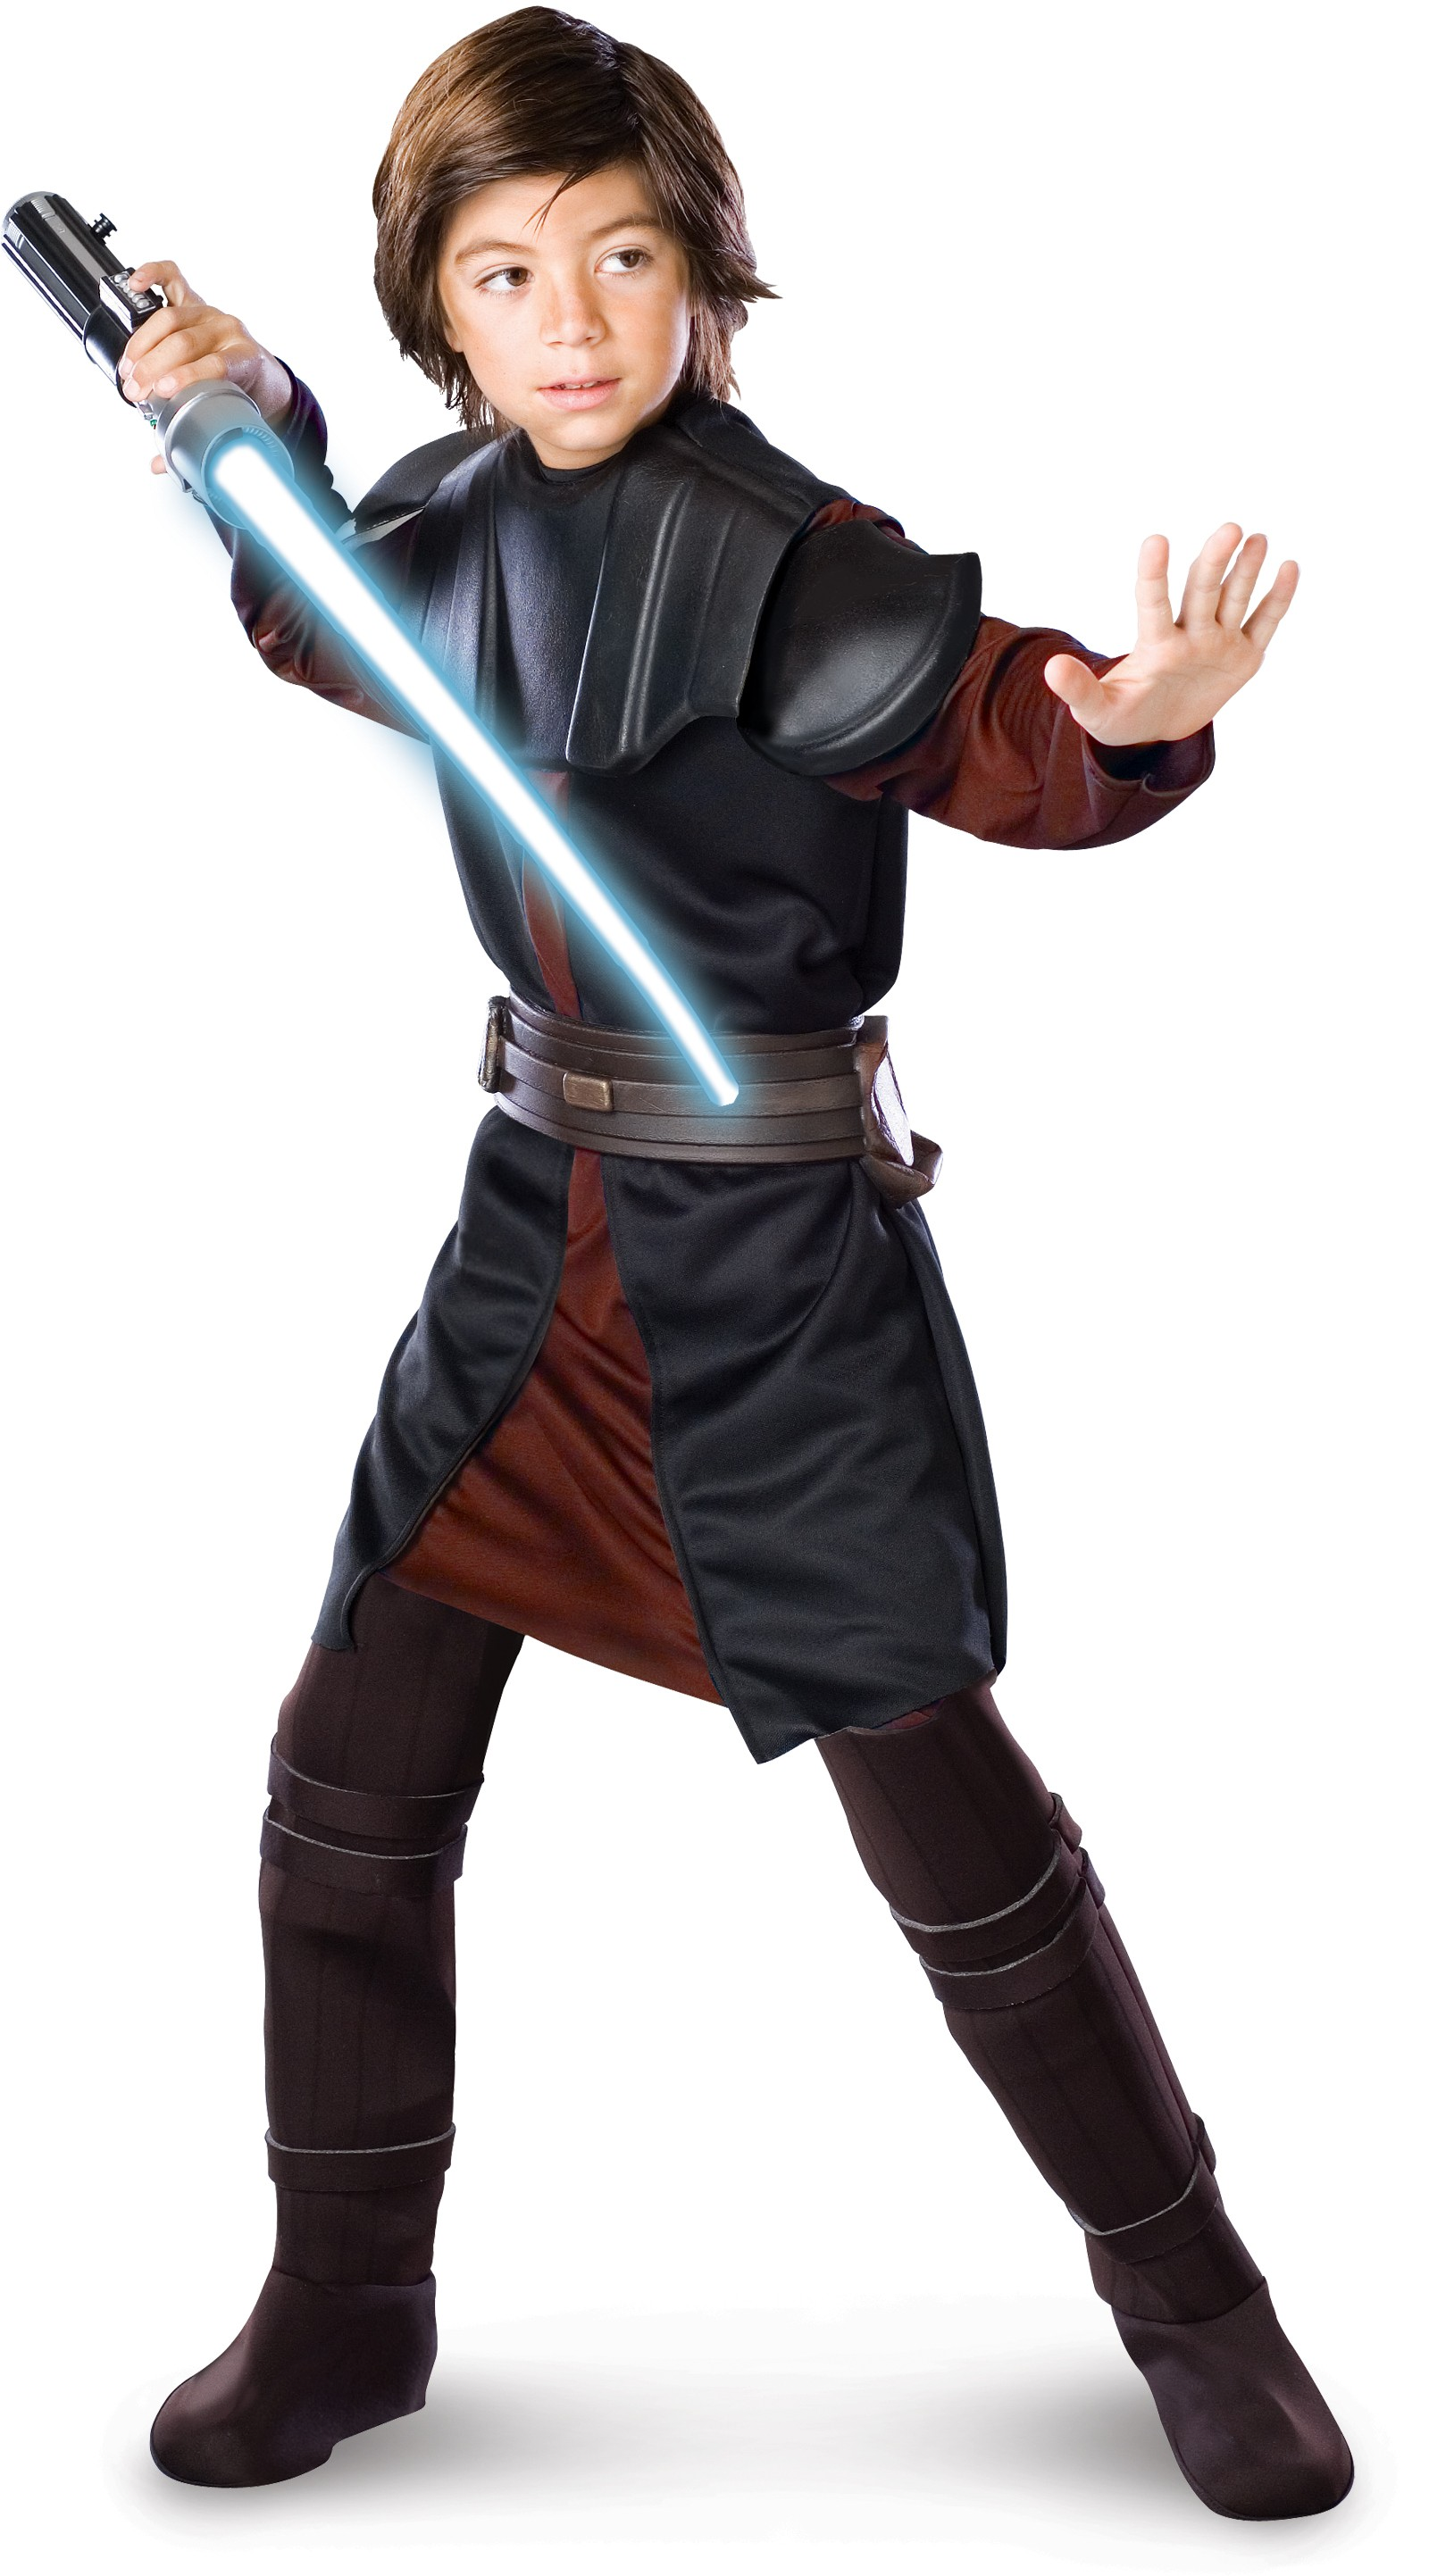 star wars animated deluxe anakin skywalker child costume. Black Bedroom Furniture Sets. Home Design Ideas